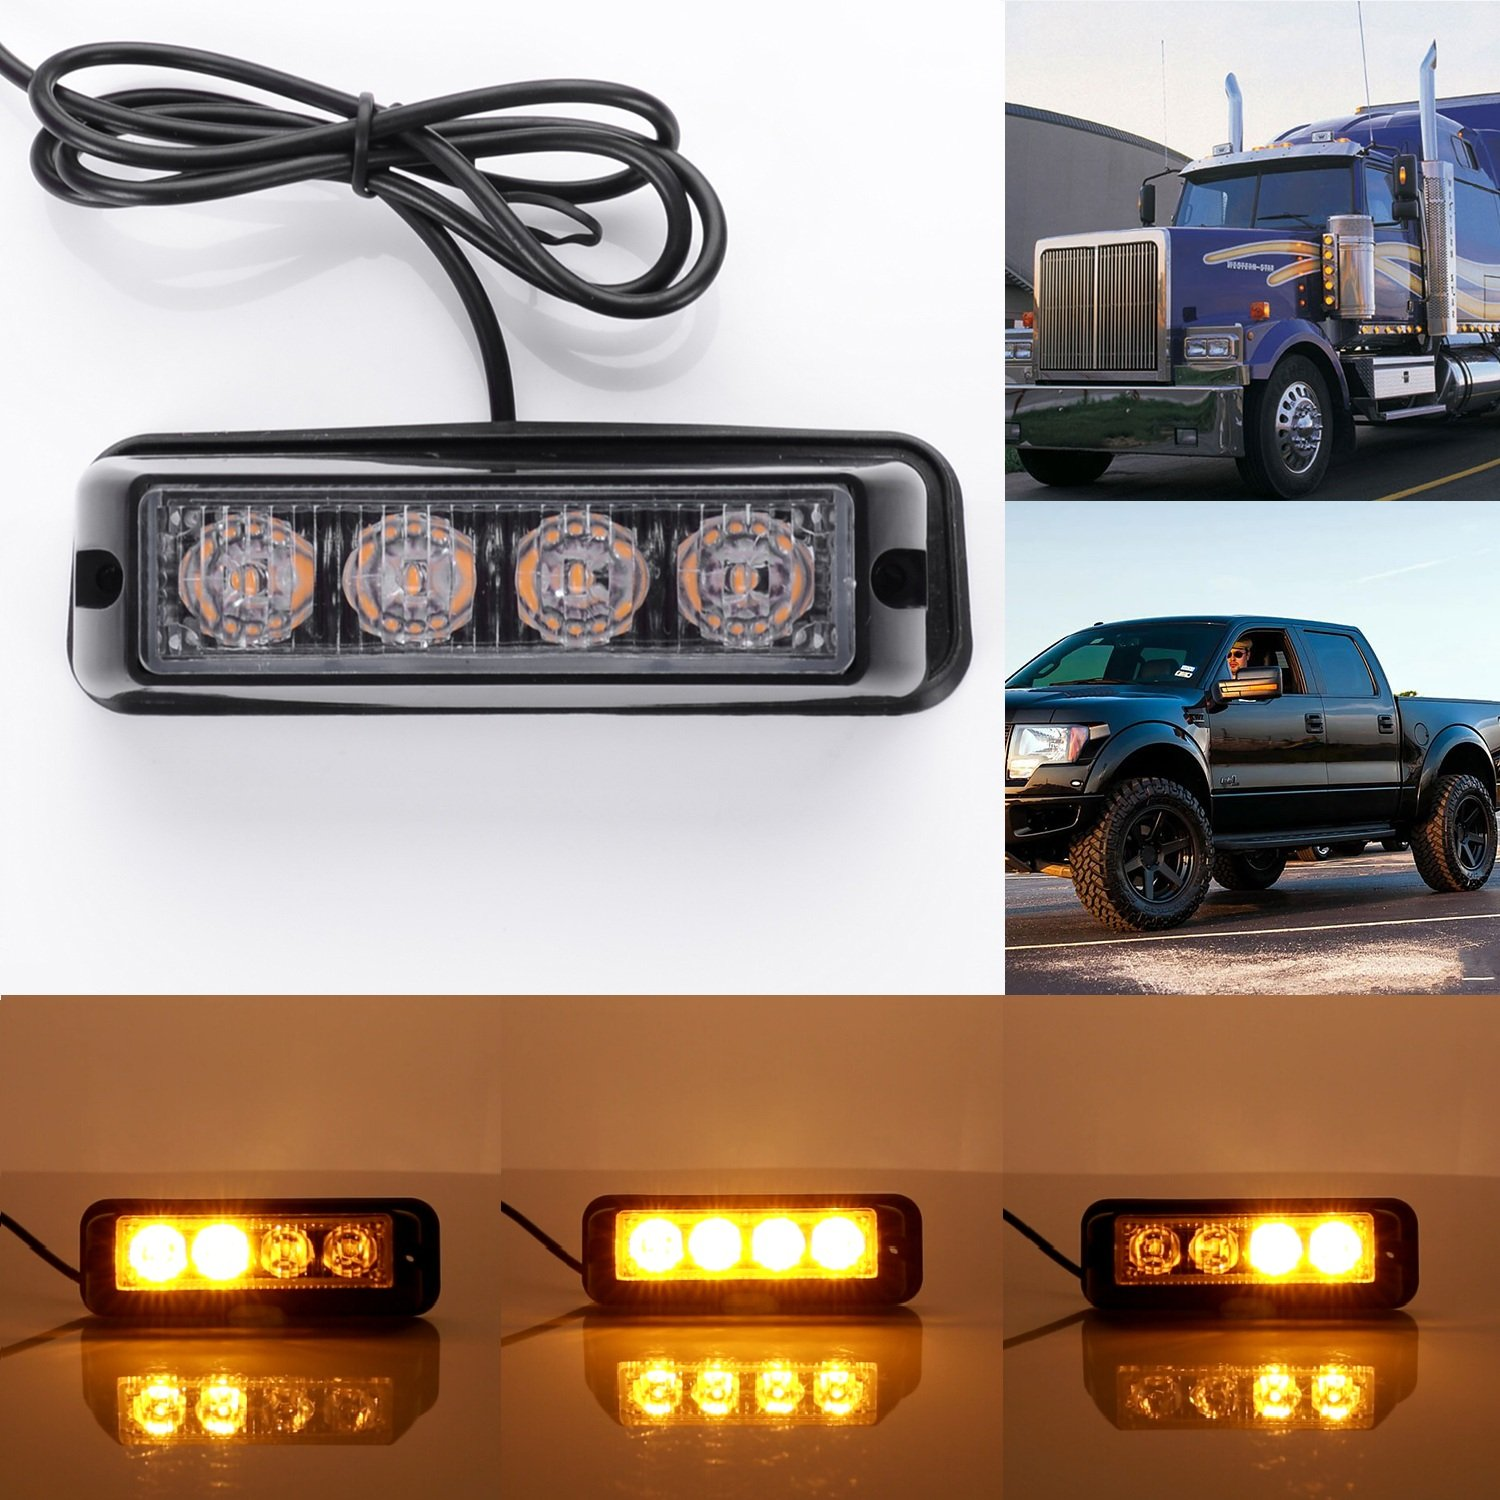 Gledto Ad Alta Intensità Faro Stroboscopica 12V - 24V 36W 12LED Giallo + Interruttore Law Enforcement LED Strobe Light Bar per Auto Camion SUV - 7 Modalità Flash